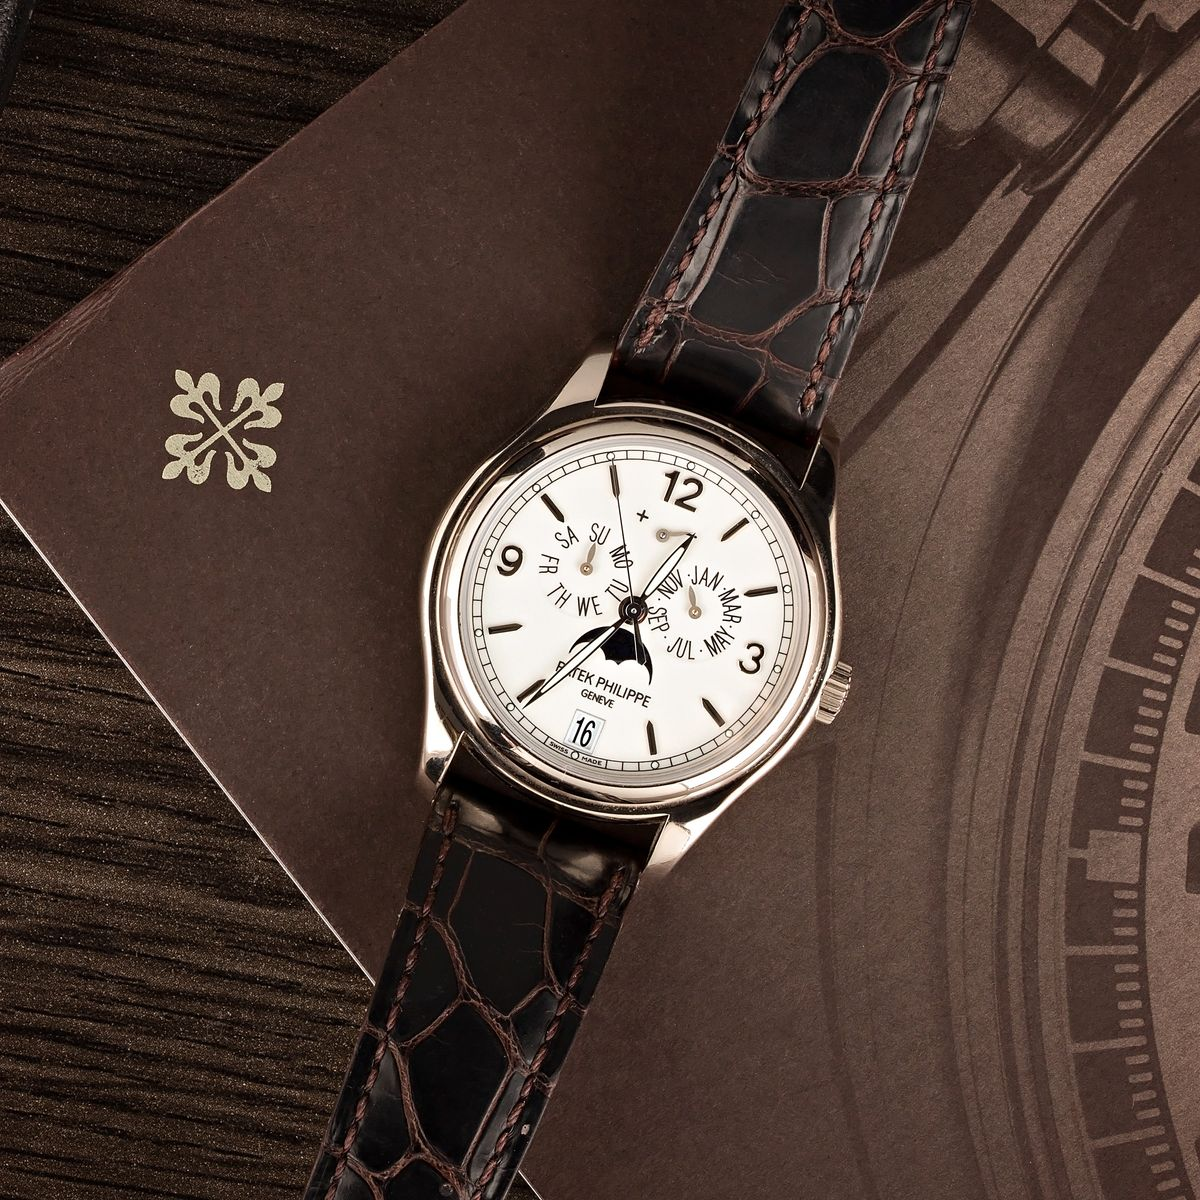 Patek Philippe Annual Calendar Watches Best Investments